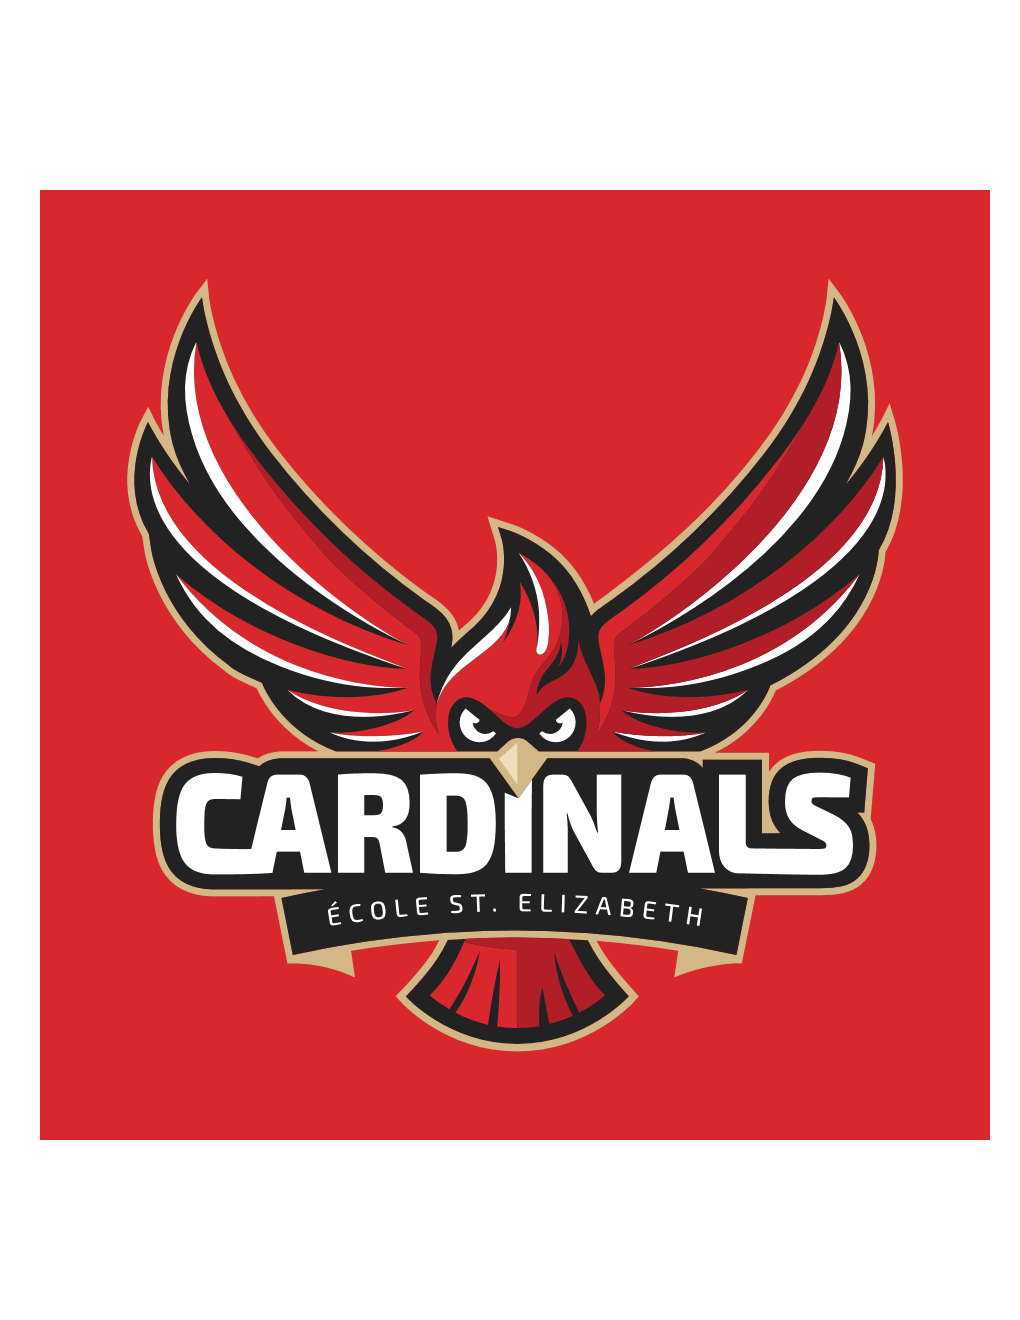 Cardinals - Final - on red.png